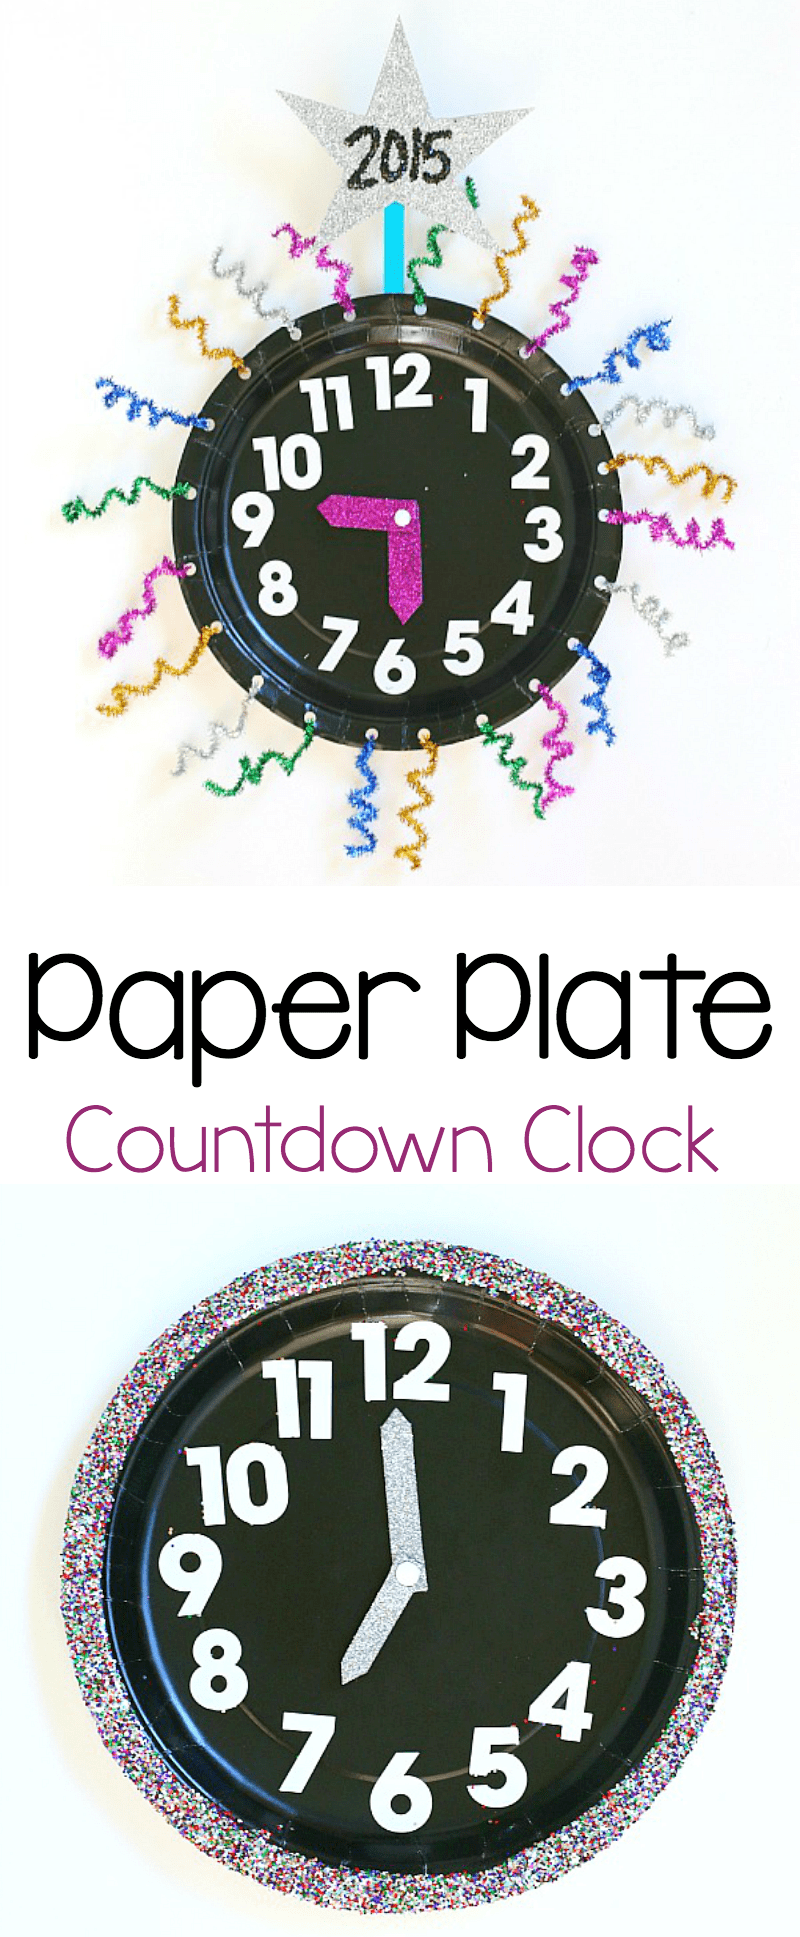 paper plate countdown clock craft for new year's eve